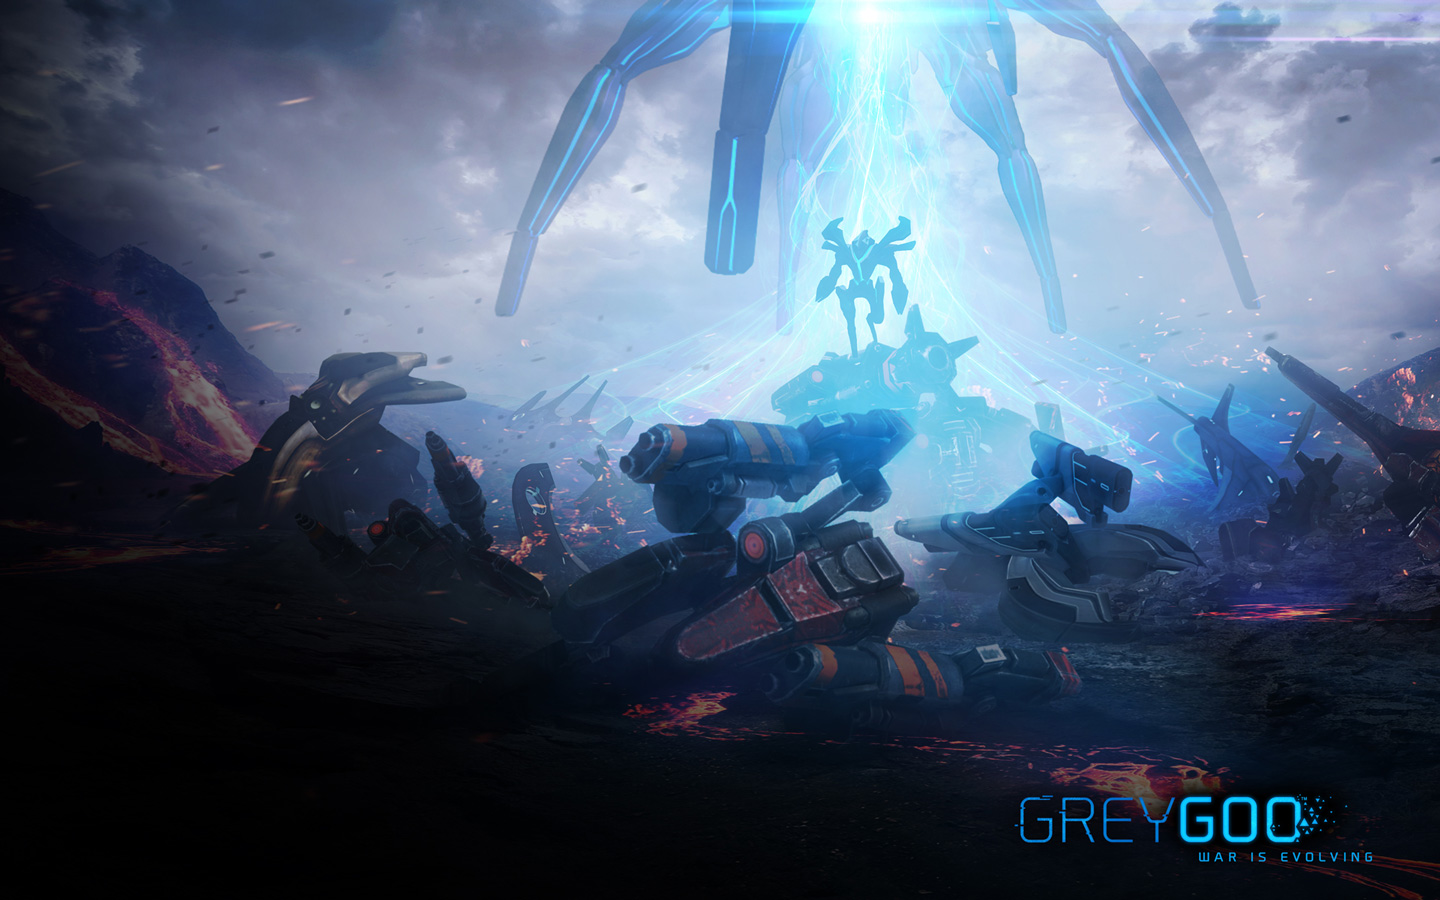 Free Grey Goo Wallpaper in 1440x900